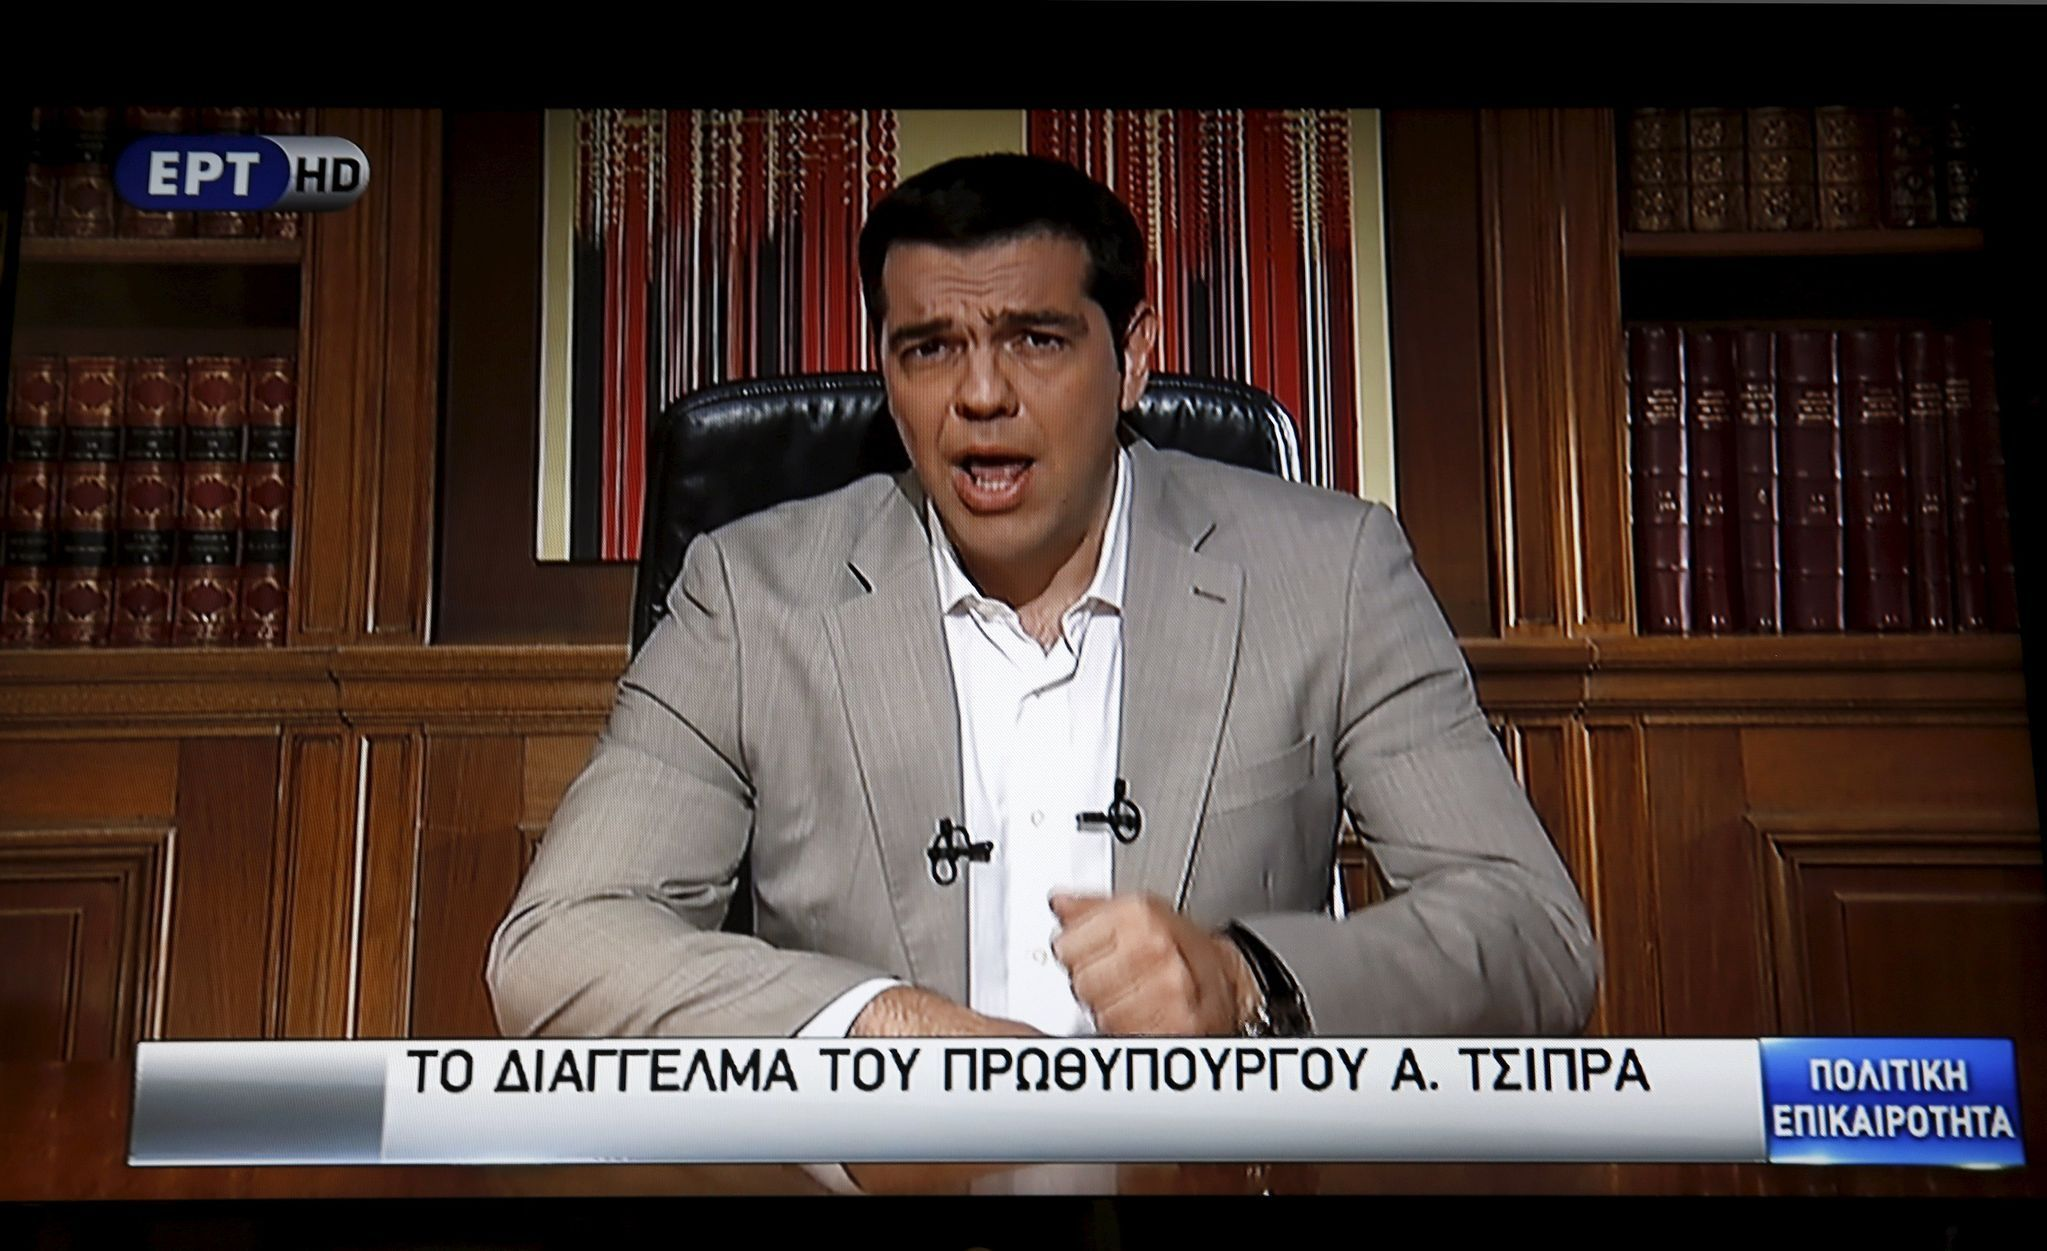 Greek Prime Minister Alexis Tsipras is seen on a television monitor while addressing the nation in Athens, Greece